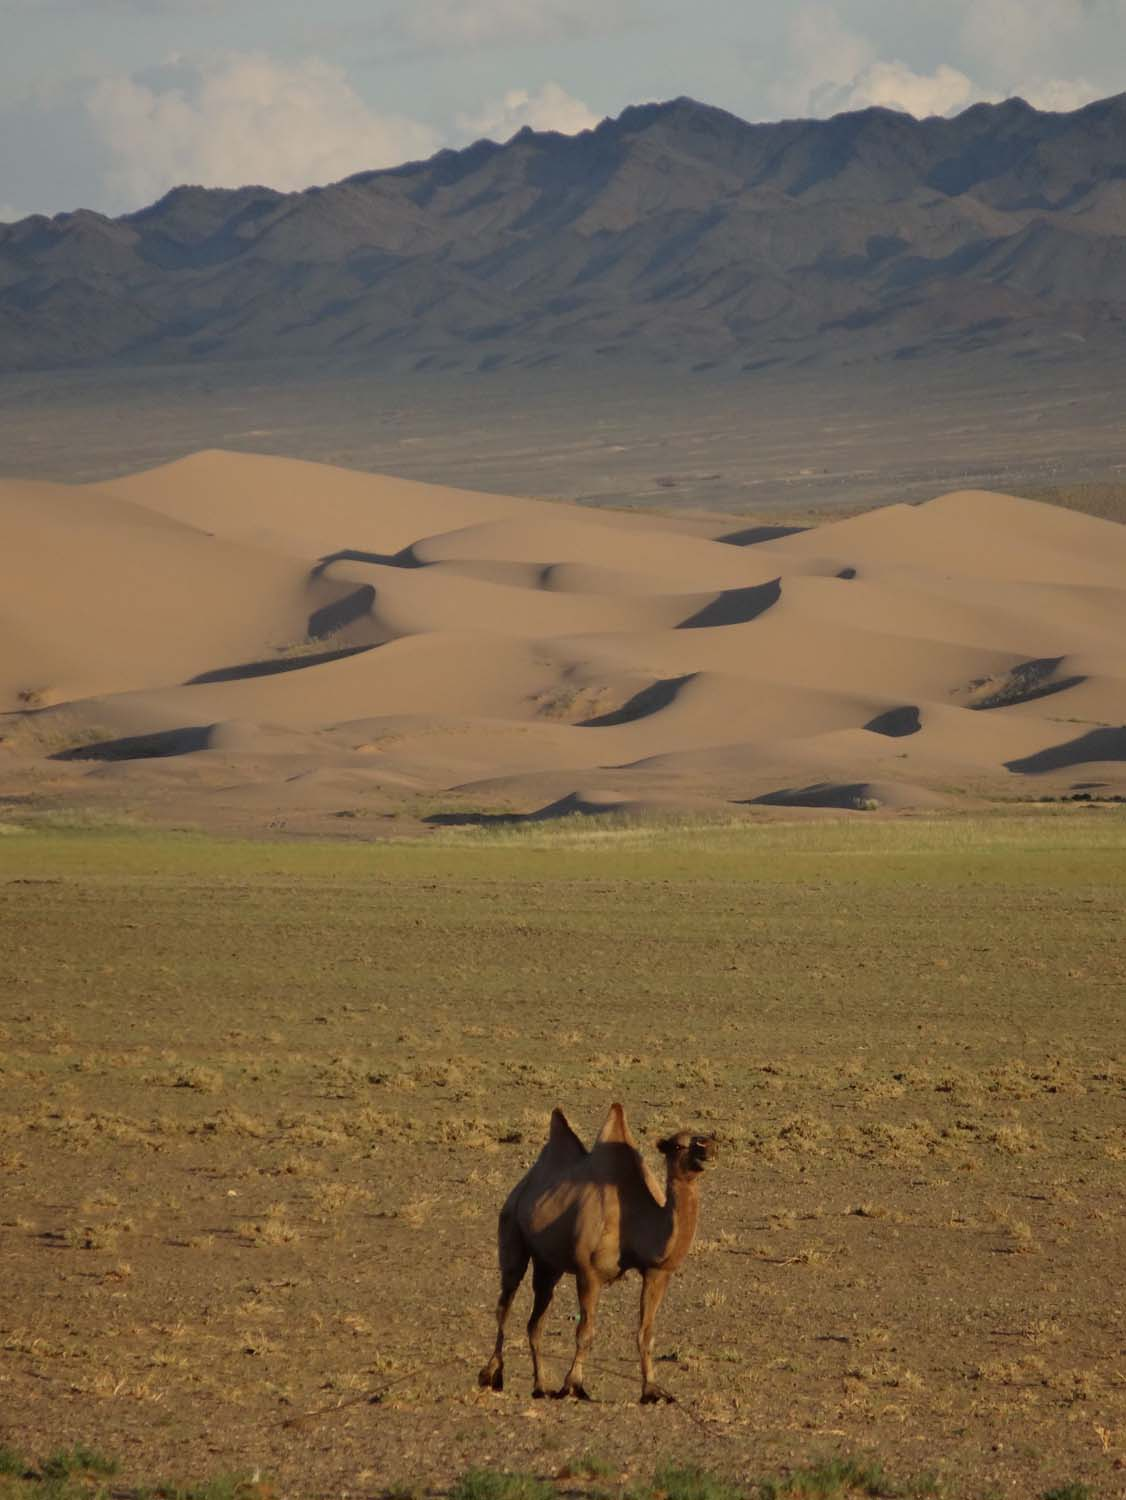 one of Ganbold's camels in front of the impressive sand dunes